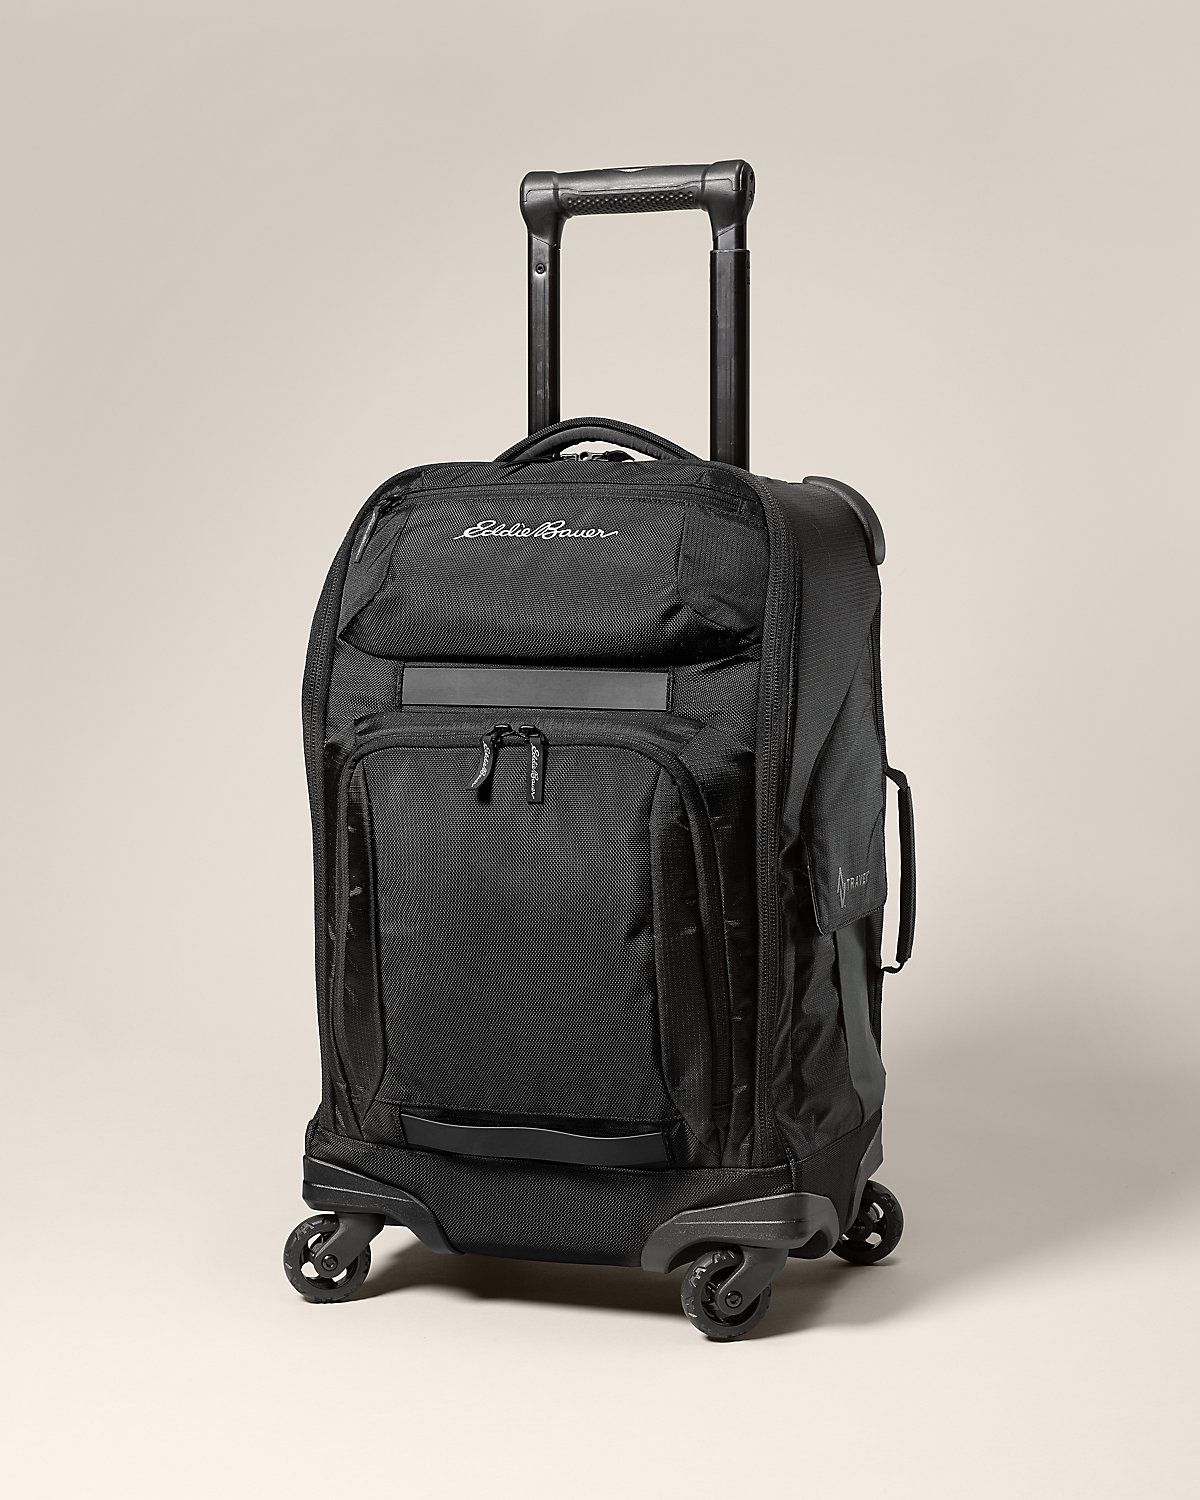 Travex Voyager 2.0 Rolling Bag  4d9d6a34fc2aa